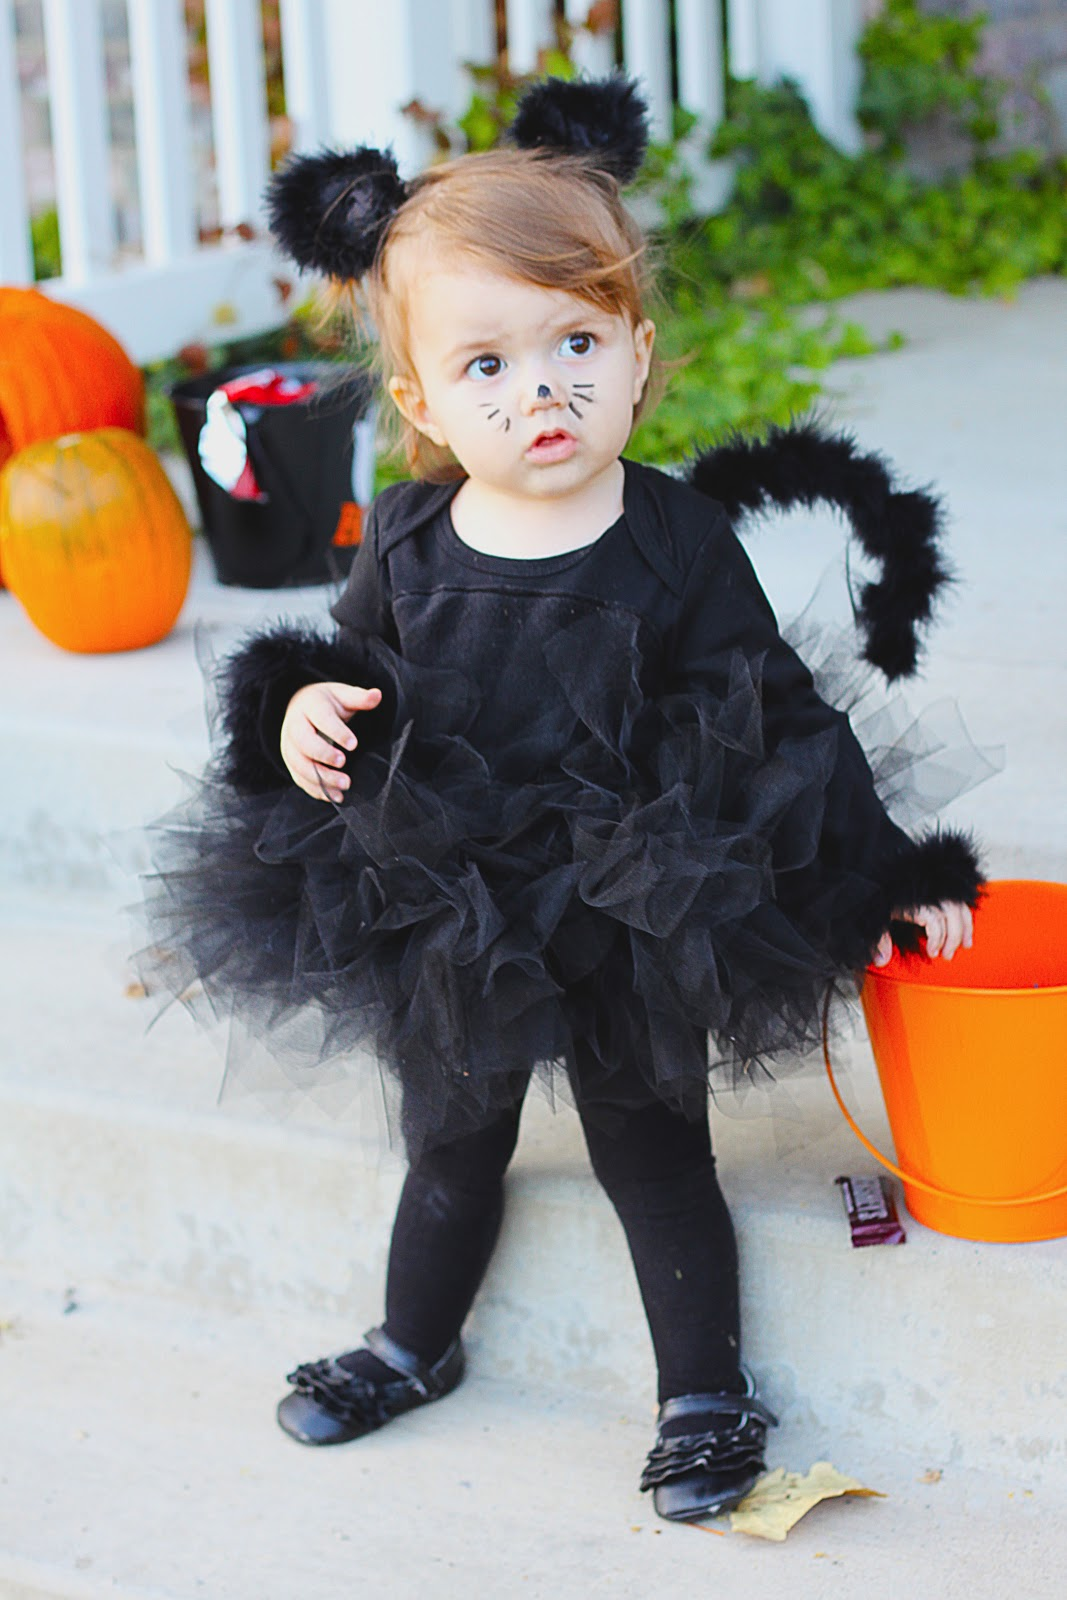 Do it yourself divas diy black cat costume how to make a cat costume for little girl the cutest halloween costume solutioingenieria